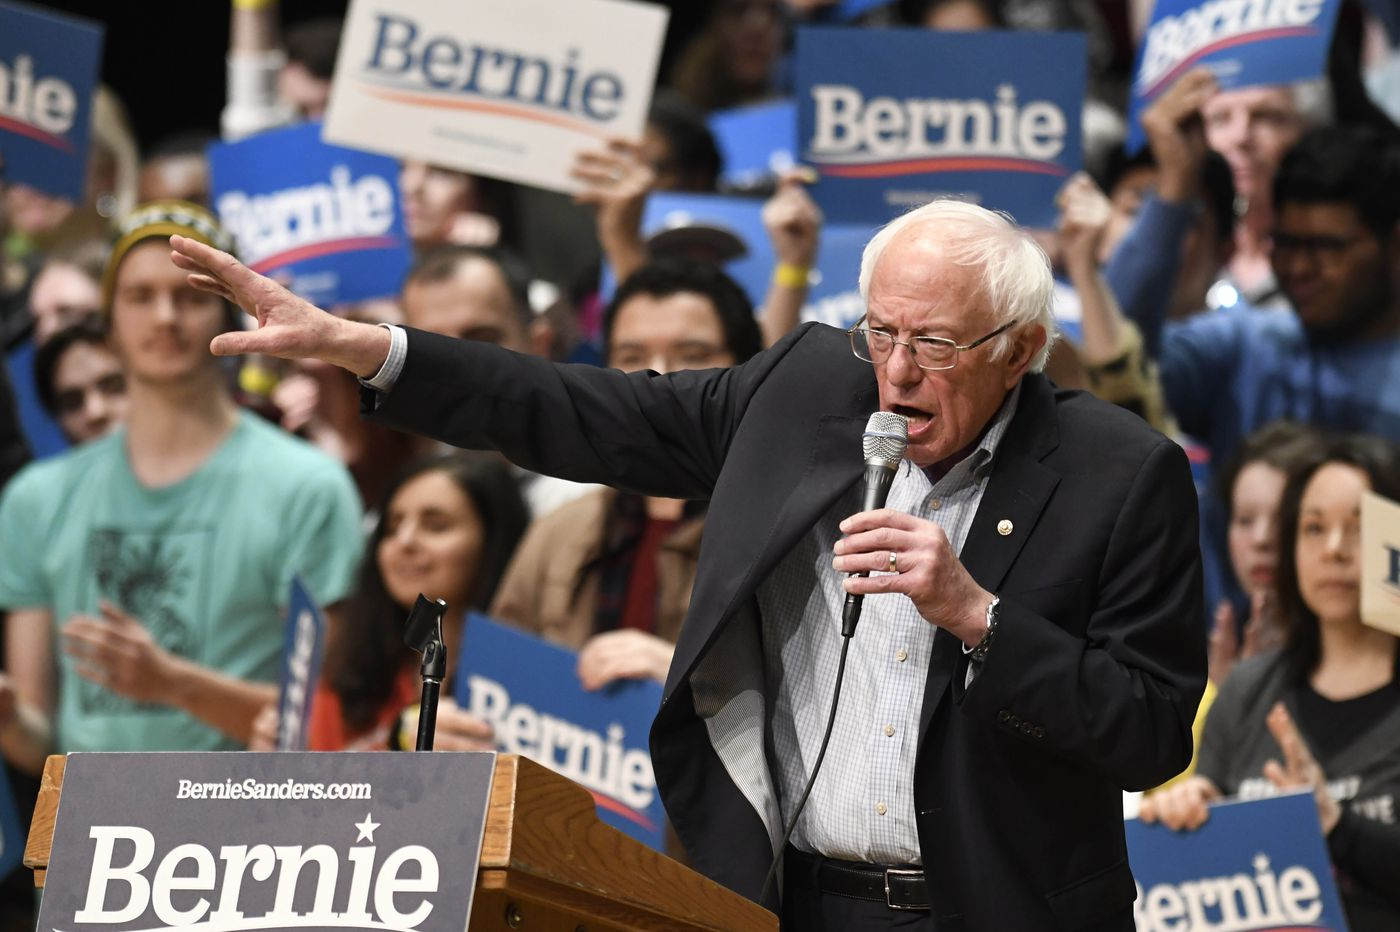 'We just barely turned blue': Bernie Sanders is getting stronger and some Democrats are getting worried.